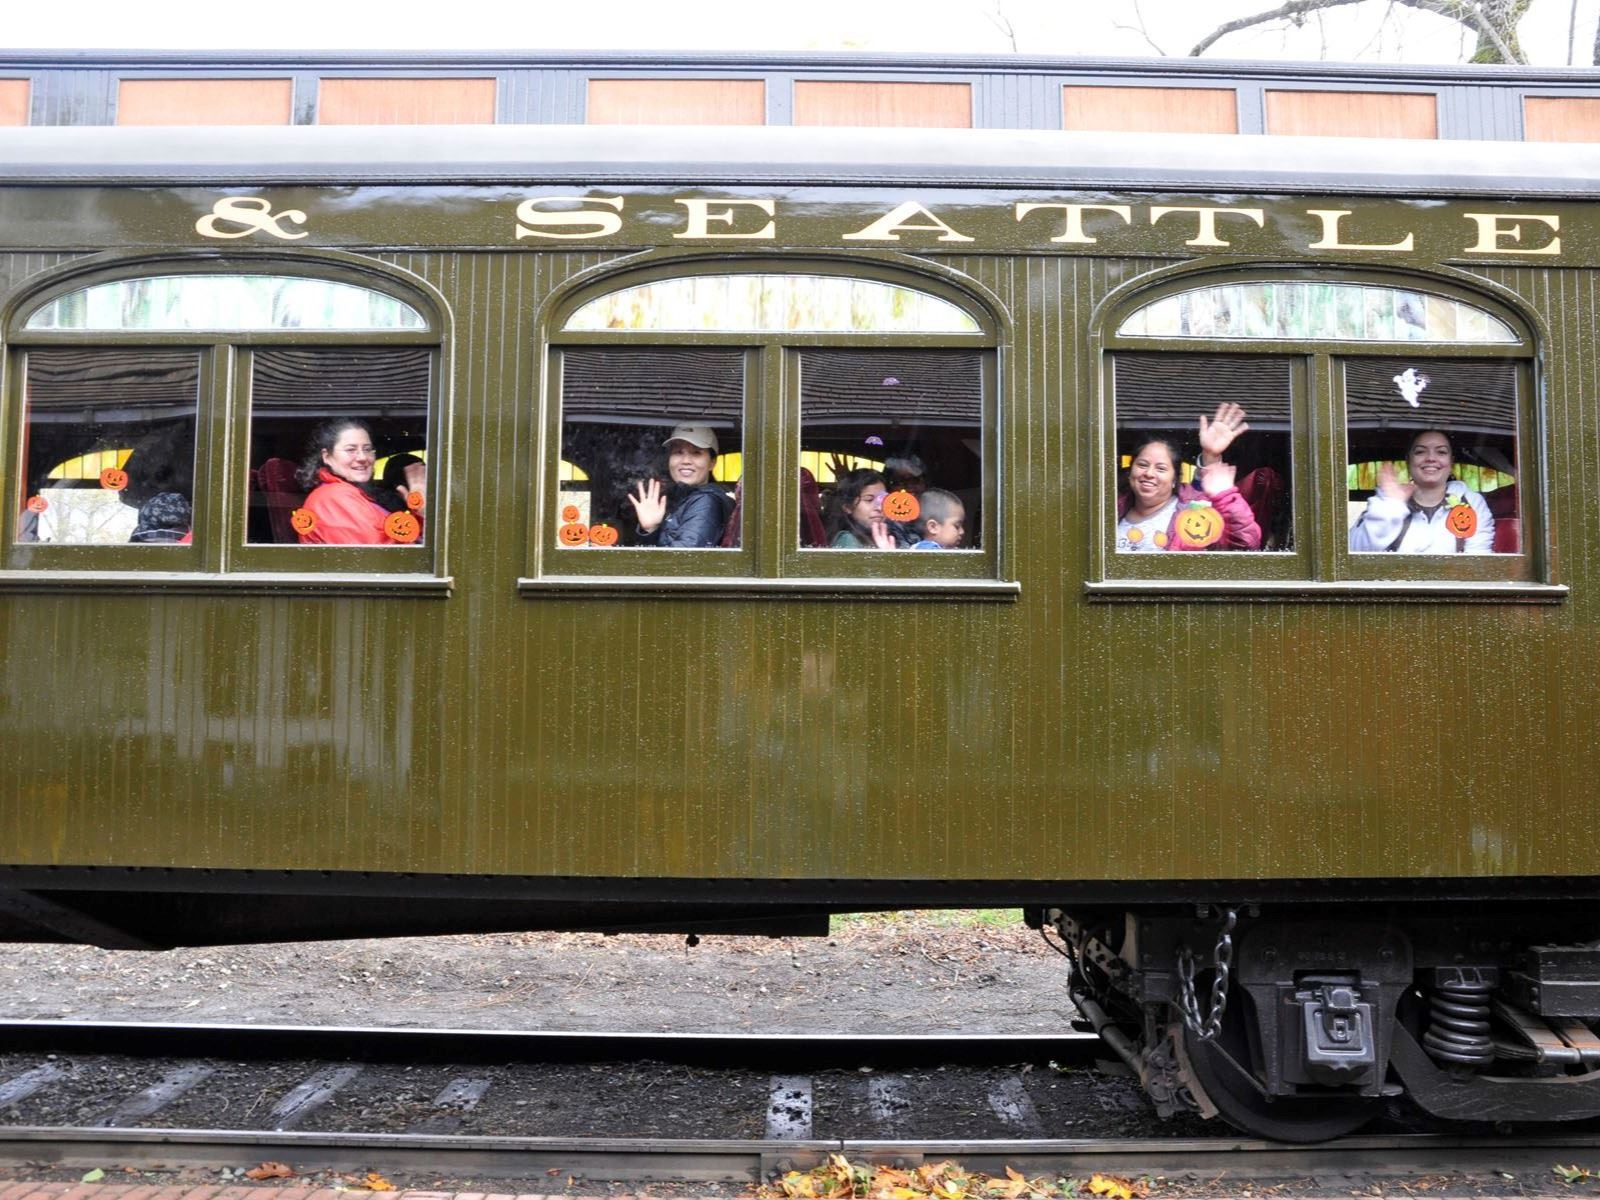 This is a picture of an antique train car with children waving.